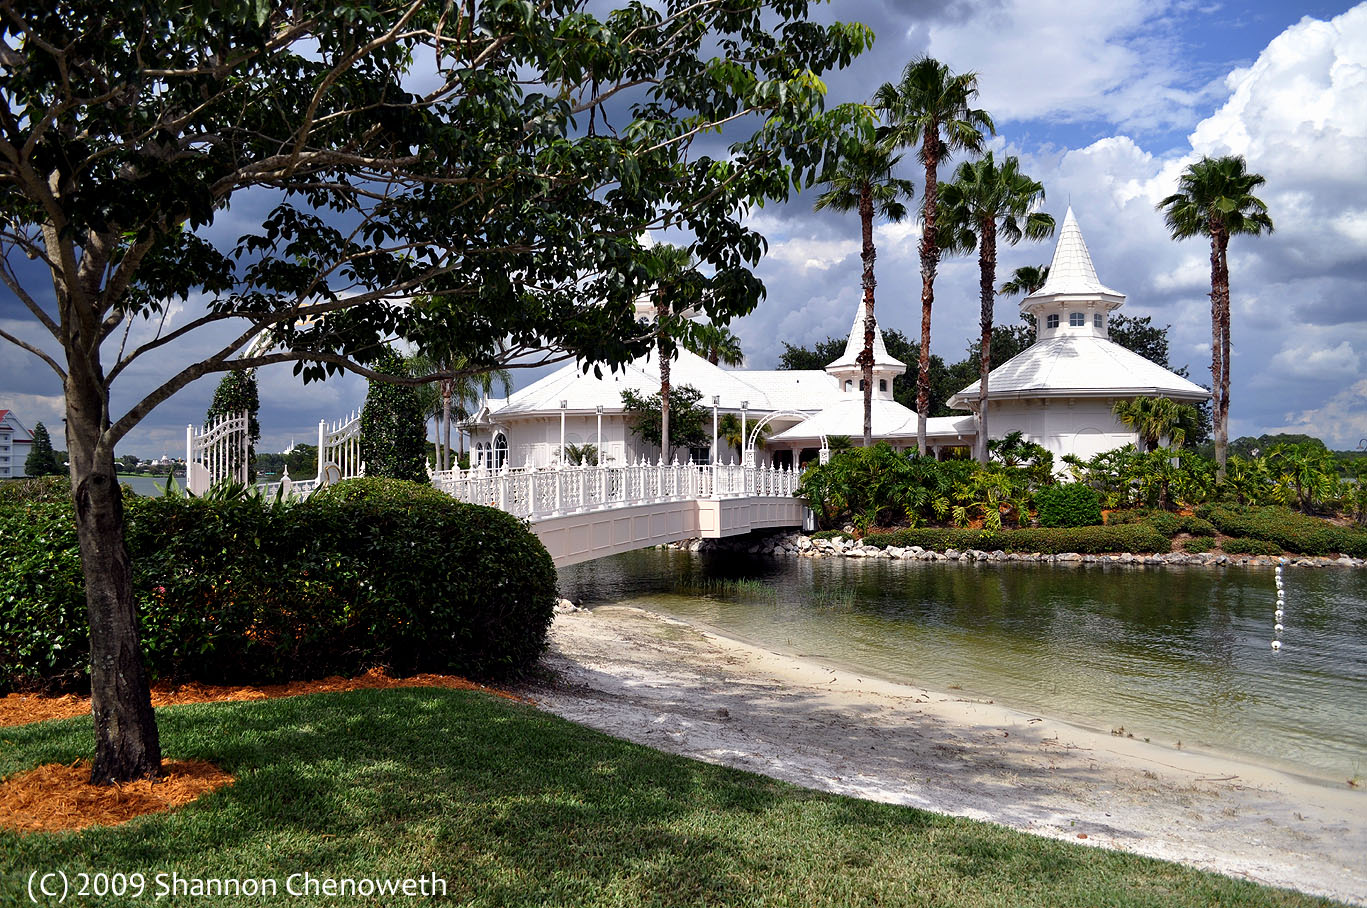 Disney S Wedding Pavilion A Fairy Tale Beginning At The Grand Floridian Resort